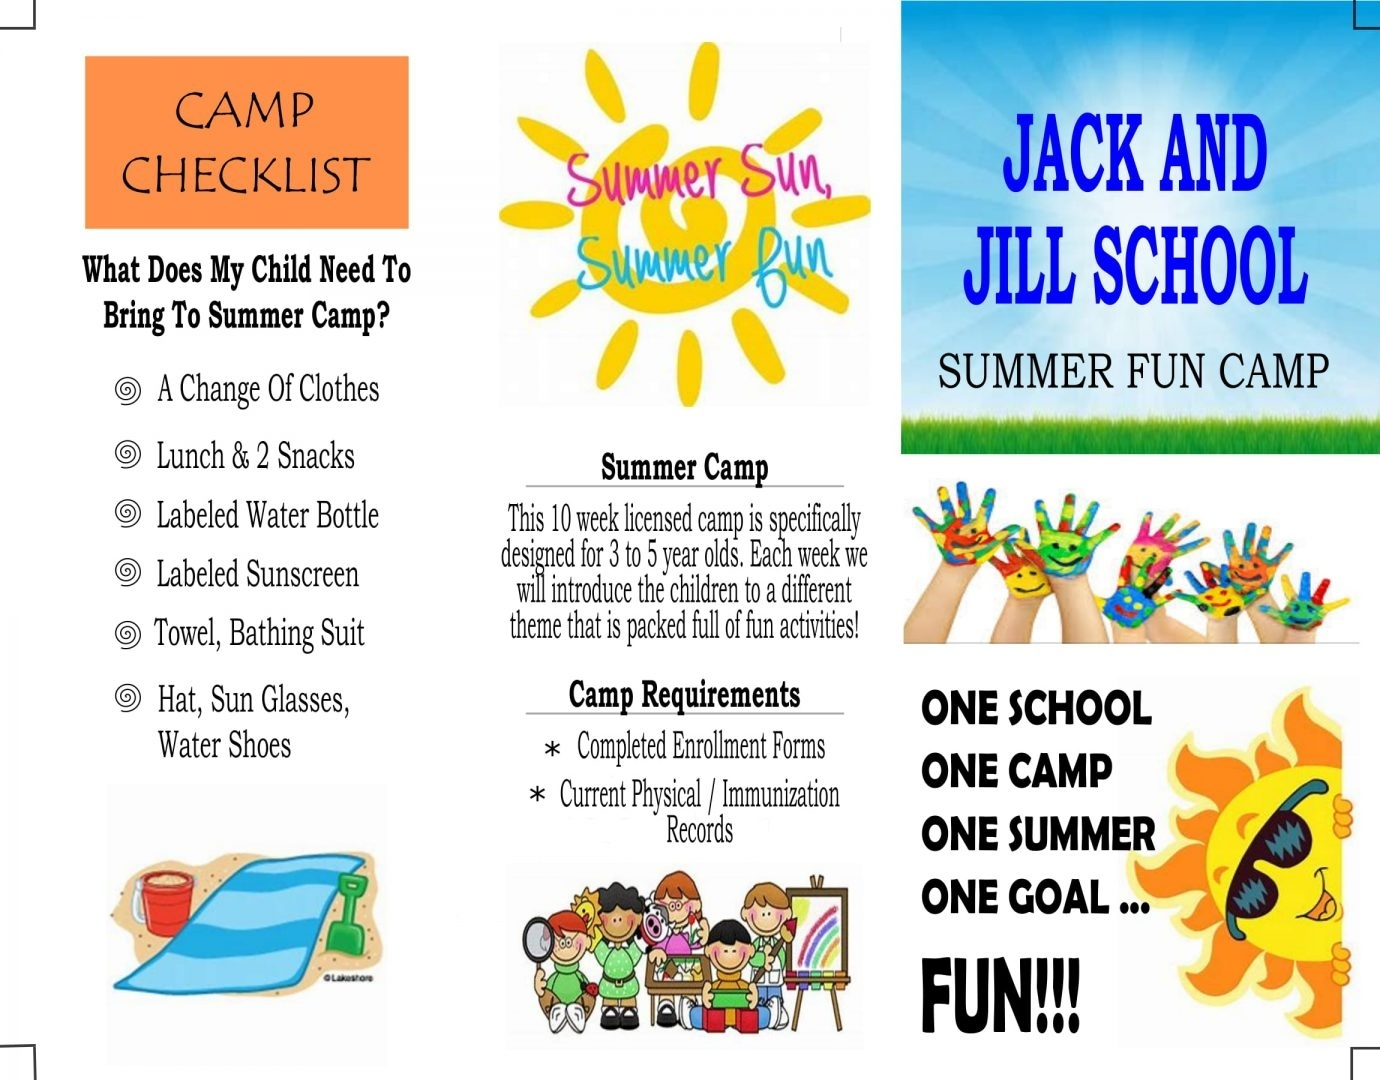 Summer Fun Camp » Jack And Jill School for Daily Summer Activities For Preschoolers